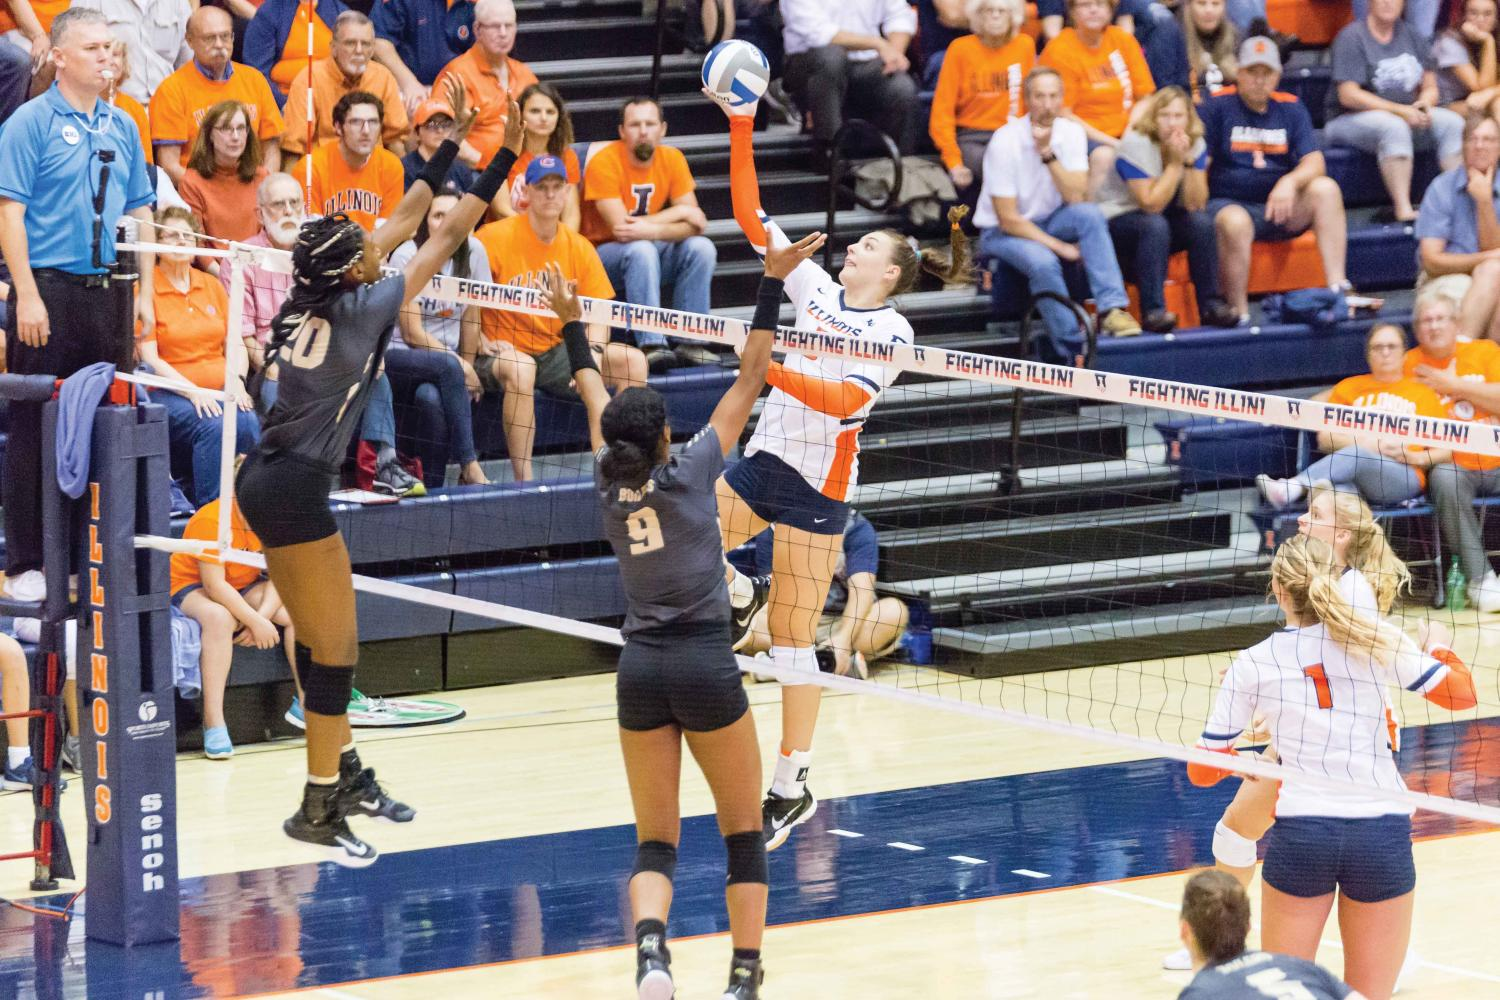 Illinois volleyball go 2-0 on the weekend | The Daily Illini